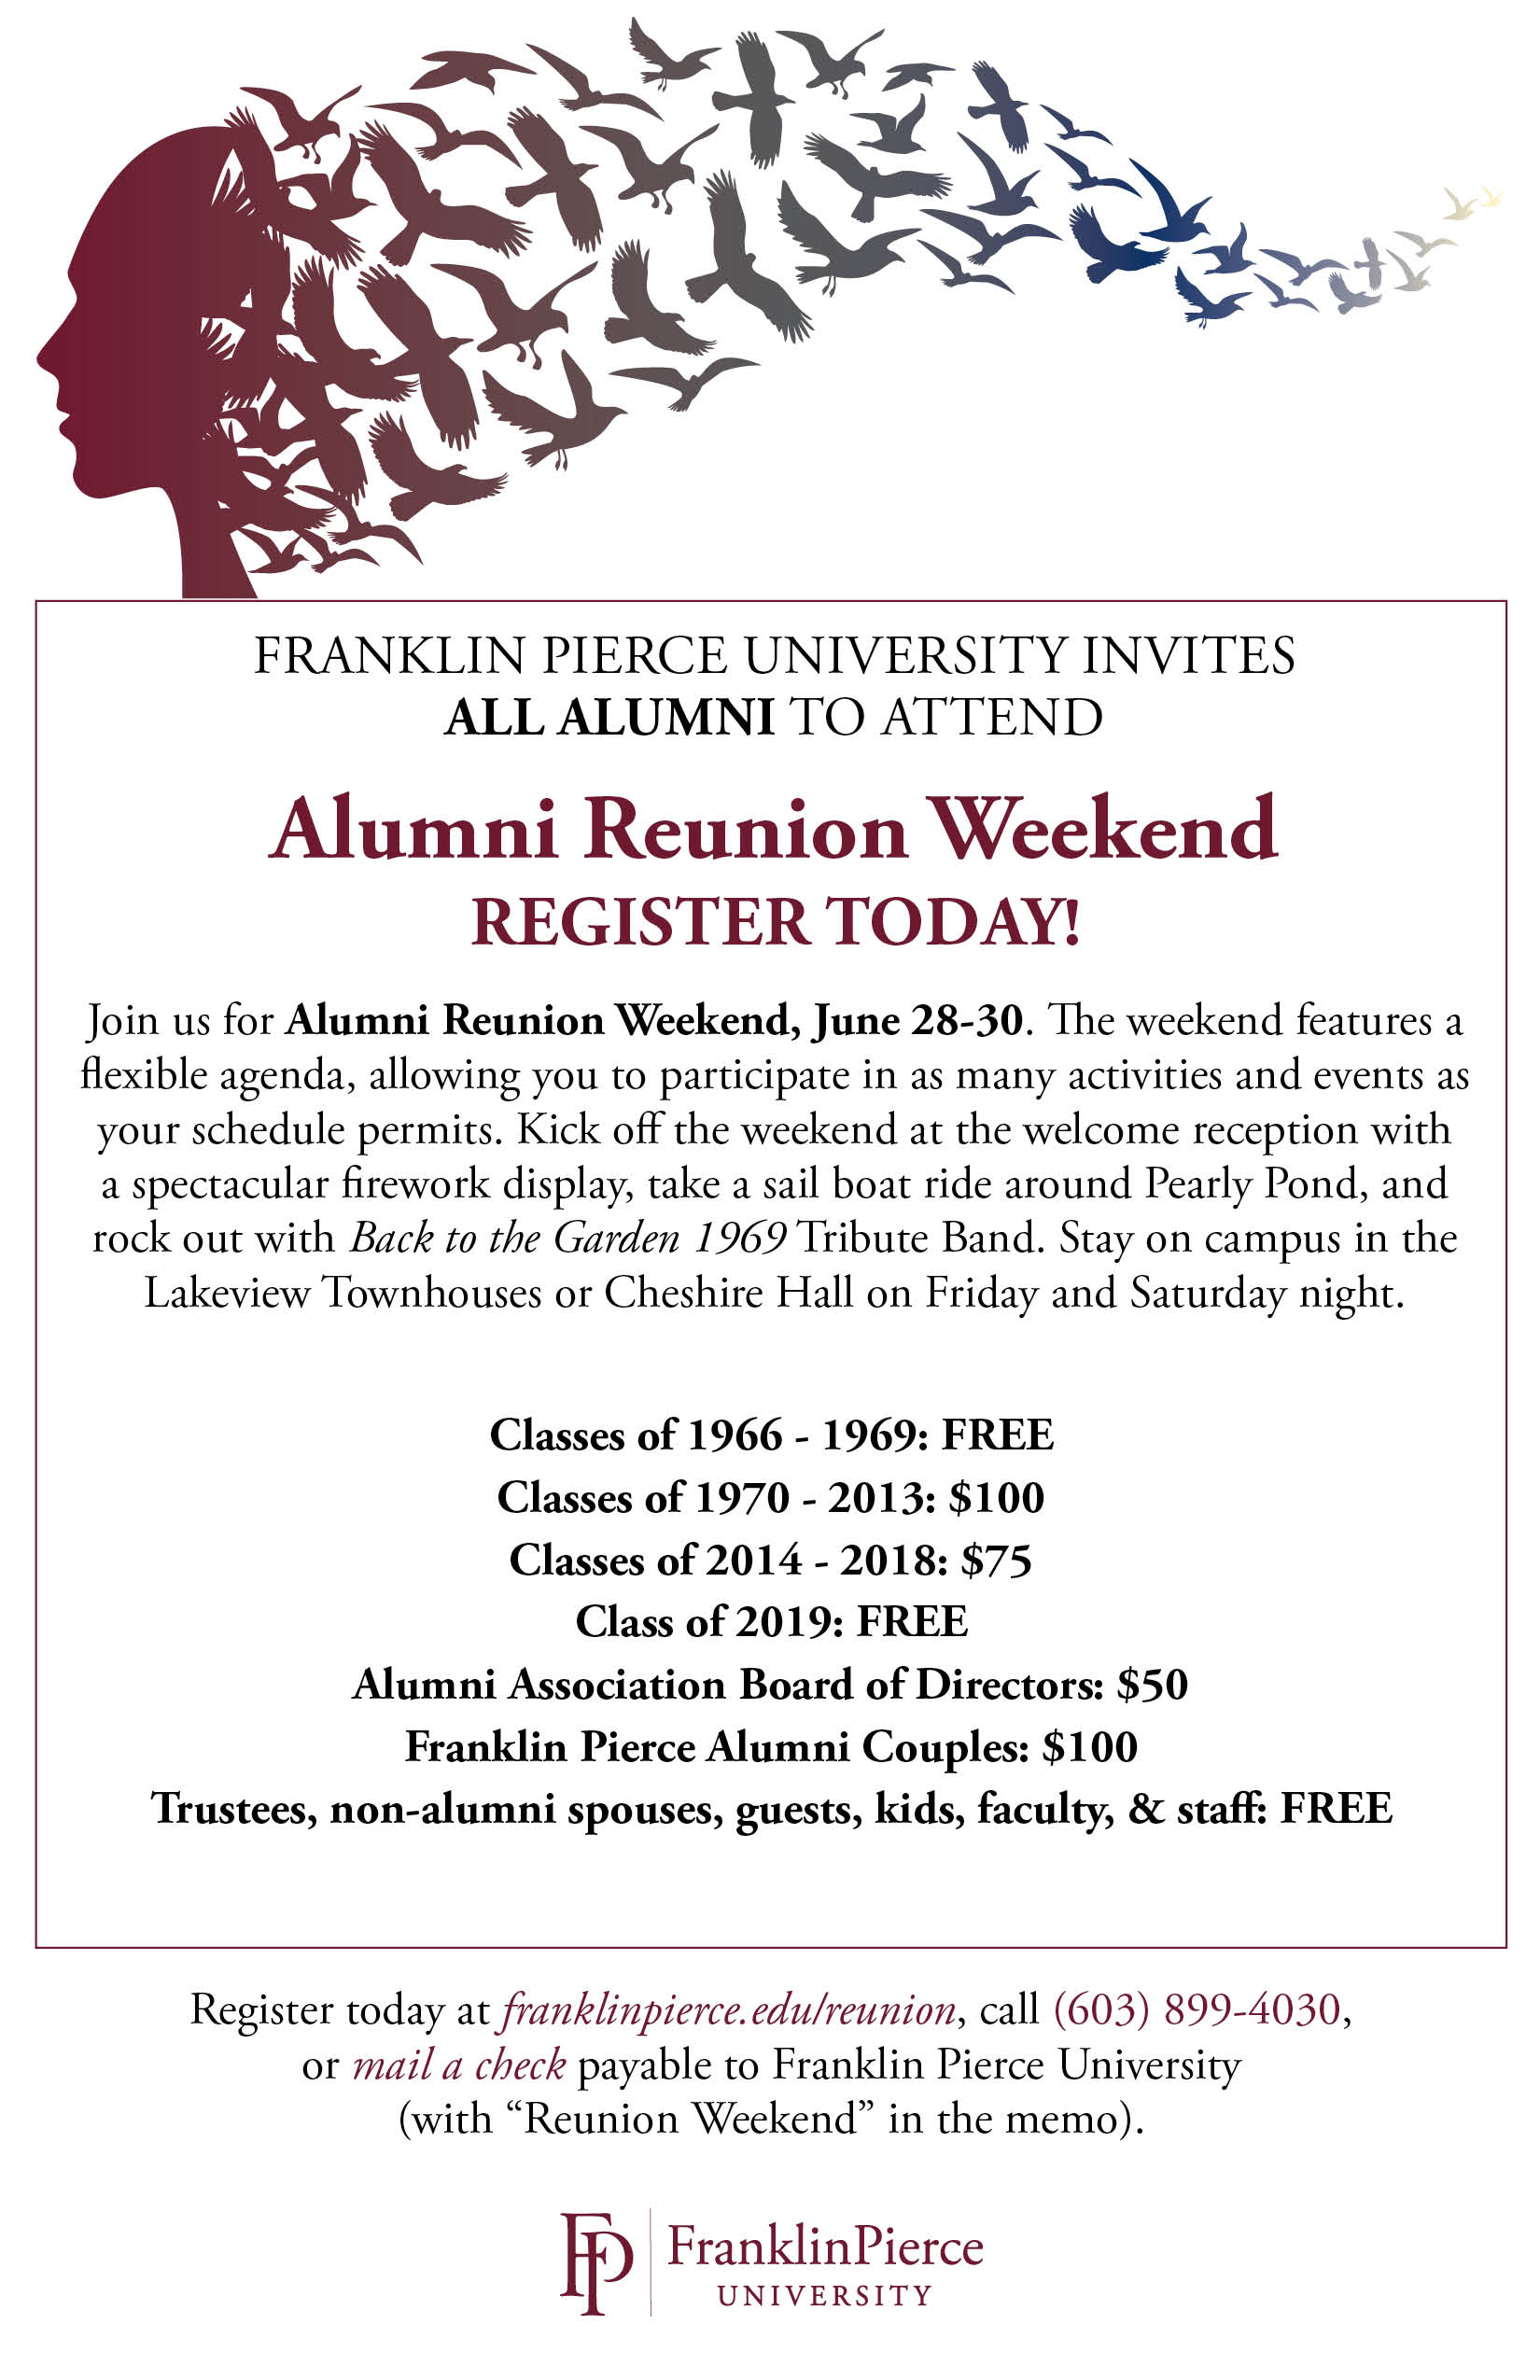 Alumni Reunion Weekend 2019 Save the Date